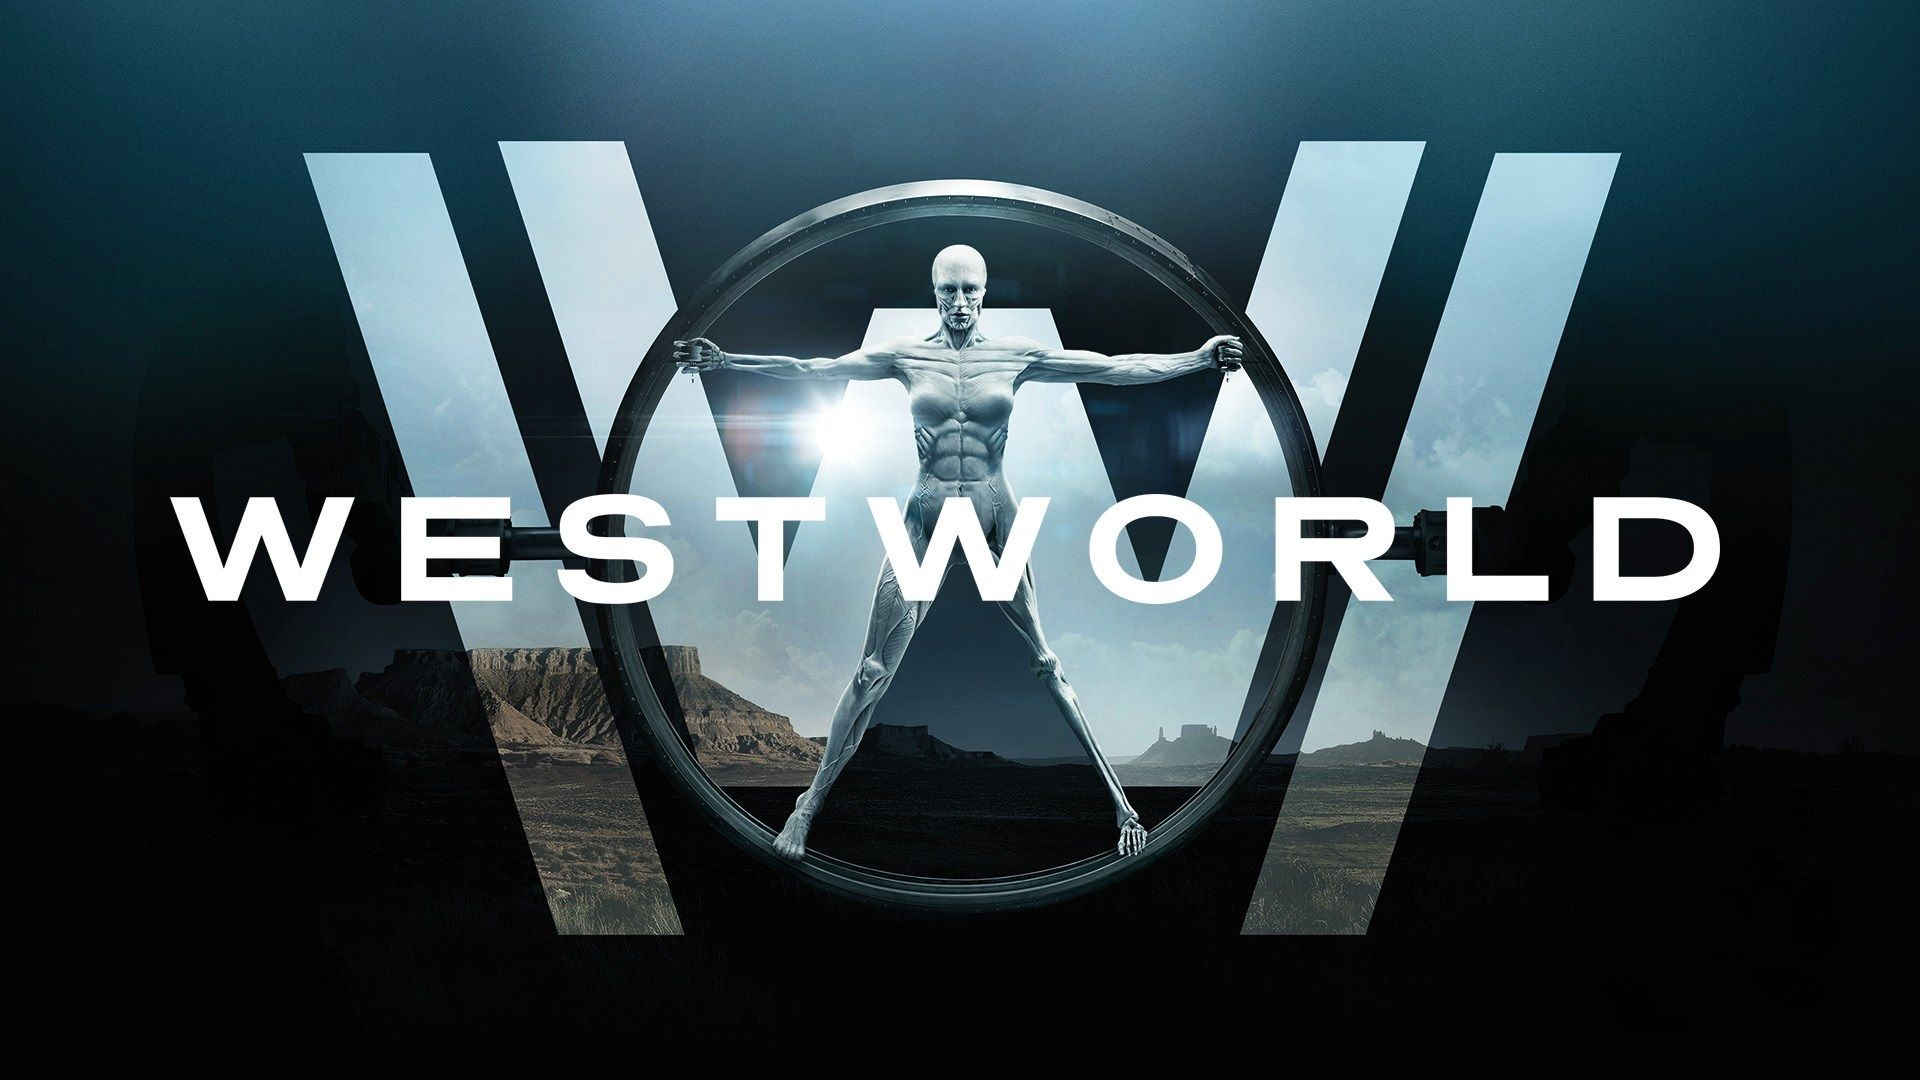 1920x1080 Westworld Free Wallpaper In Hd Westworld Season Westworld Season 1 Westworld